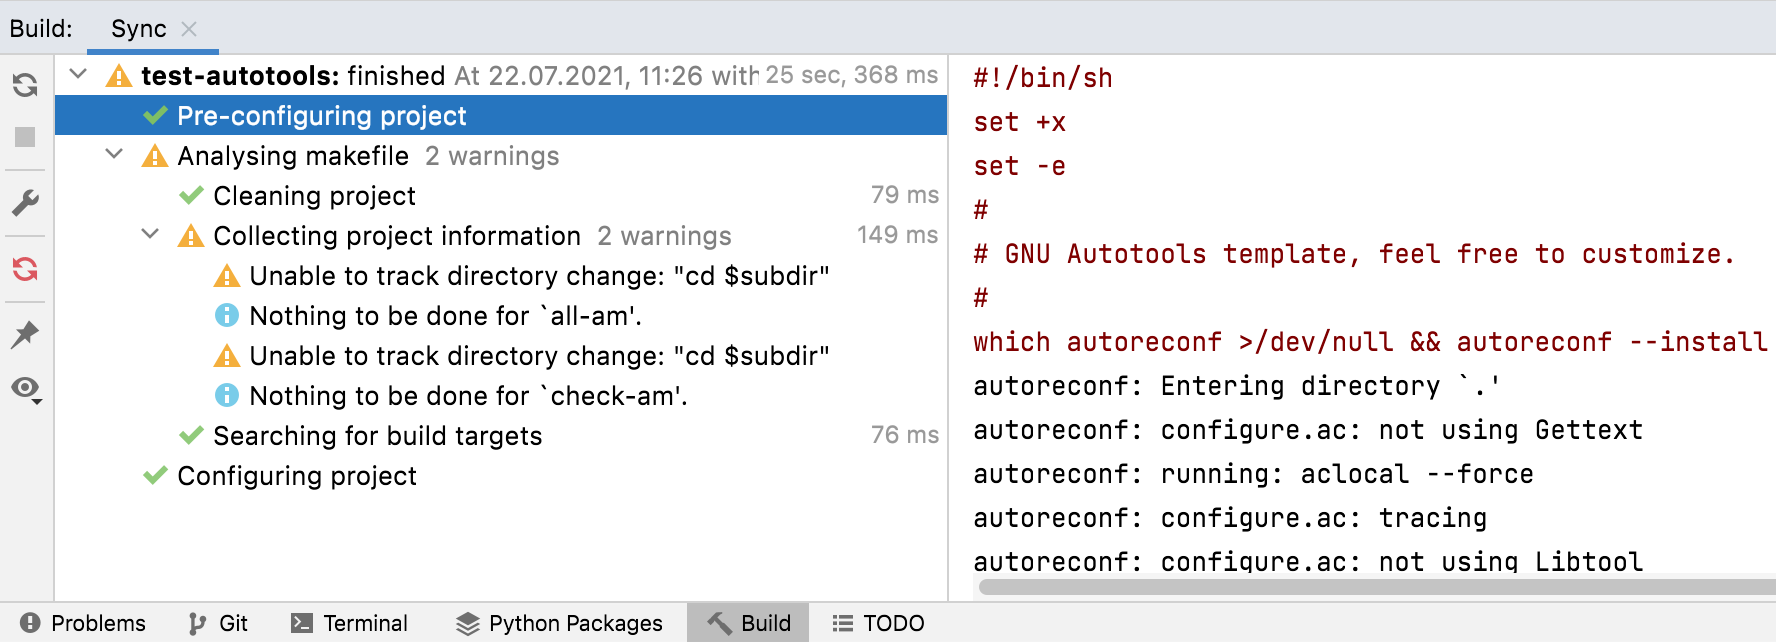 Pre-configuring the project with autoreconf